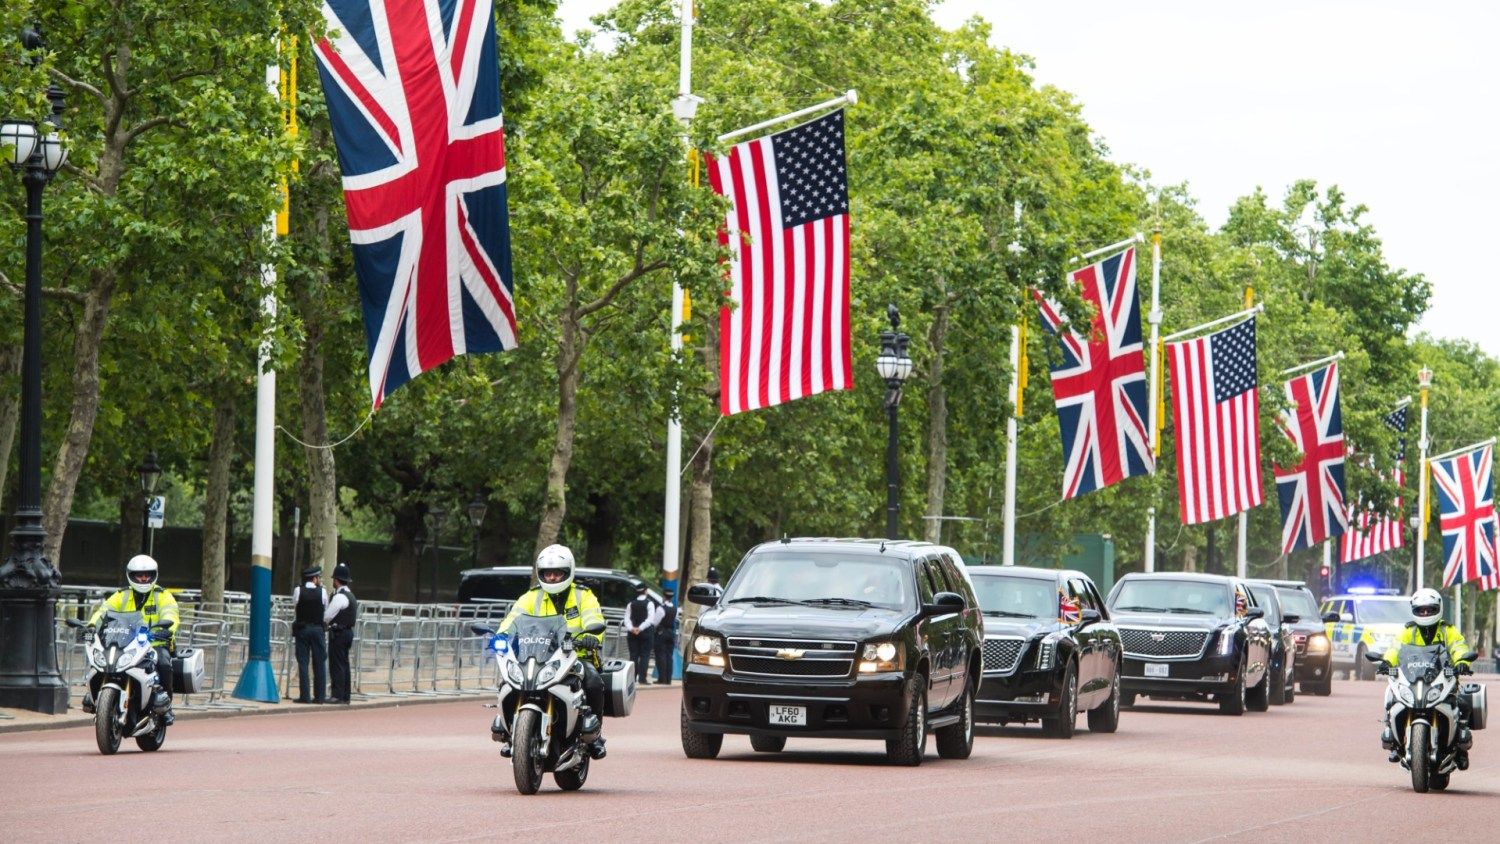 Diplomats owe the UK £111million in motoring fines